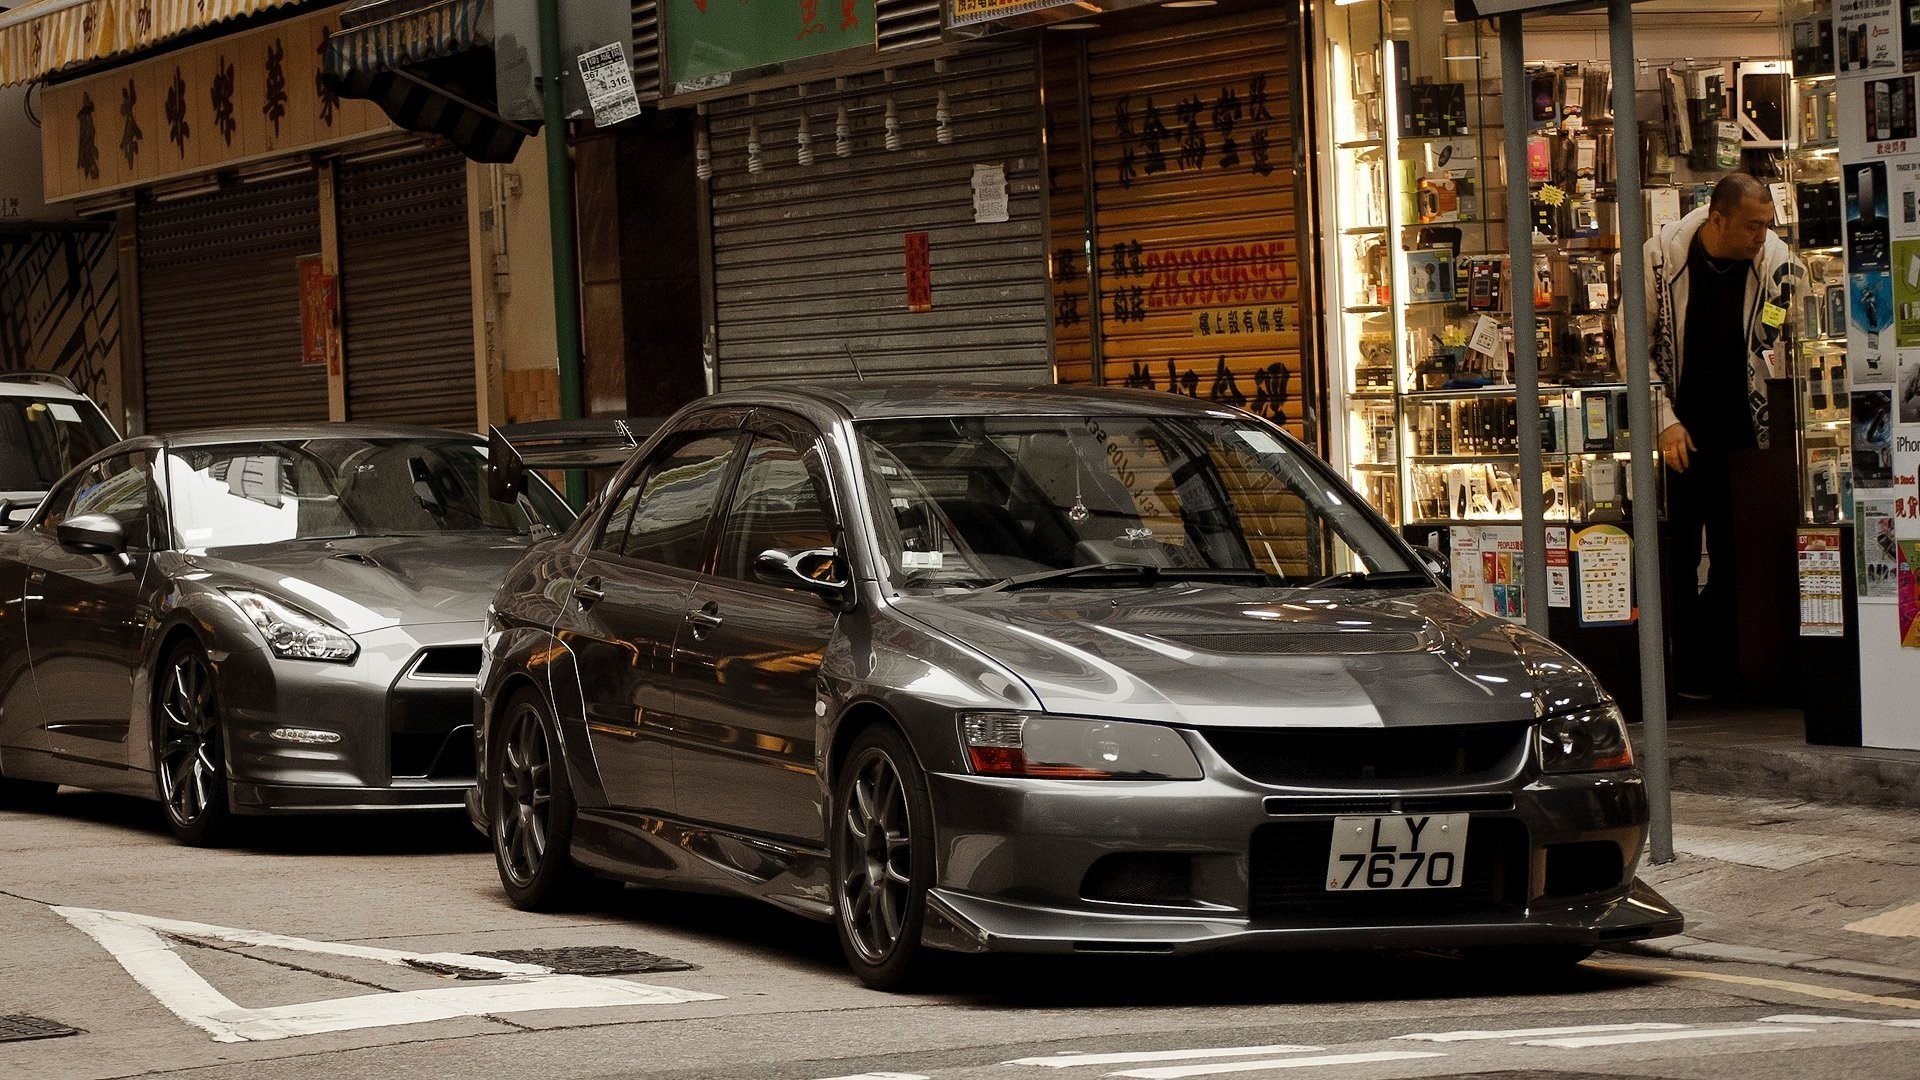 China cars Hong Kong sports cars Mitsubishi Lancer Evolution VIII Nissan  R35 GT-R wallpaper | | 238227 | WallpaperUP